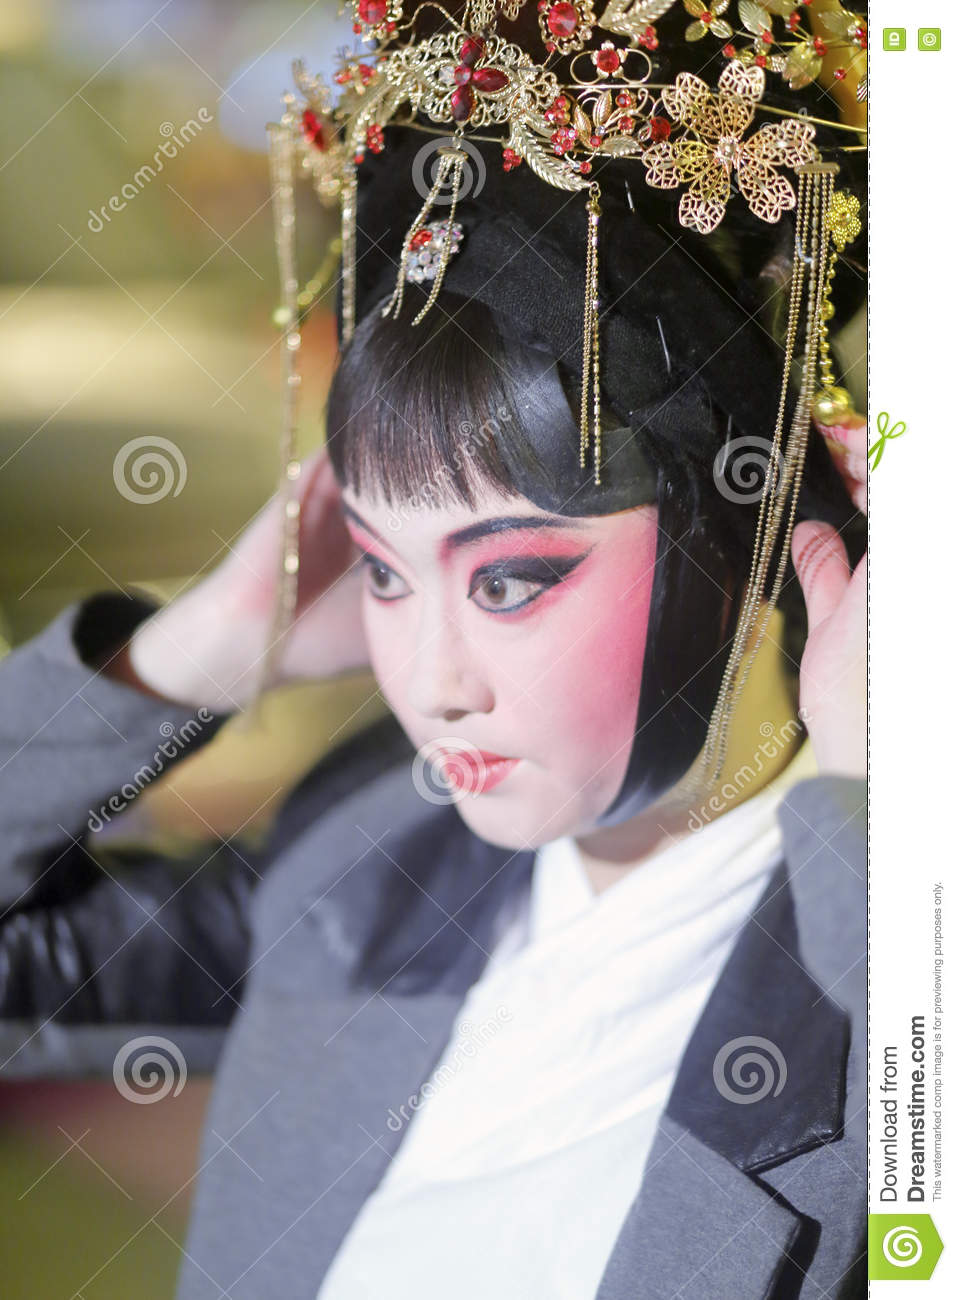 Before the performance, the chinese female peking opera performer makeup and comb her hair.